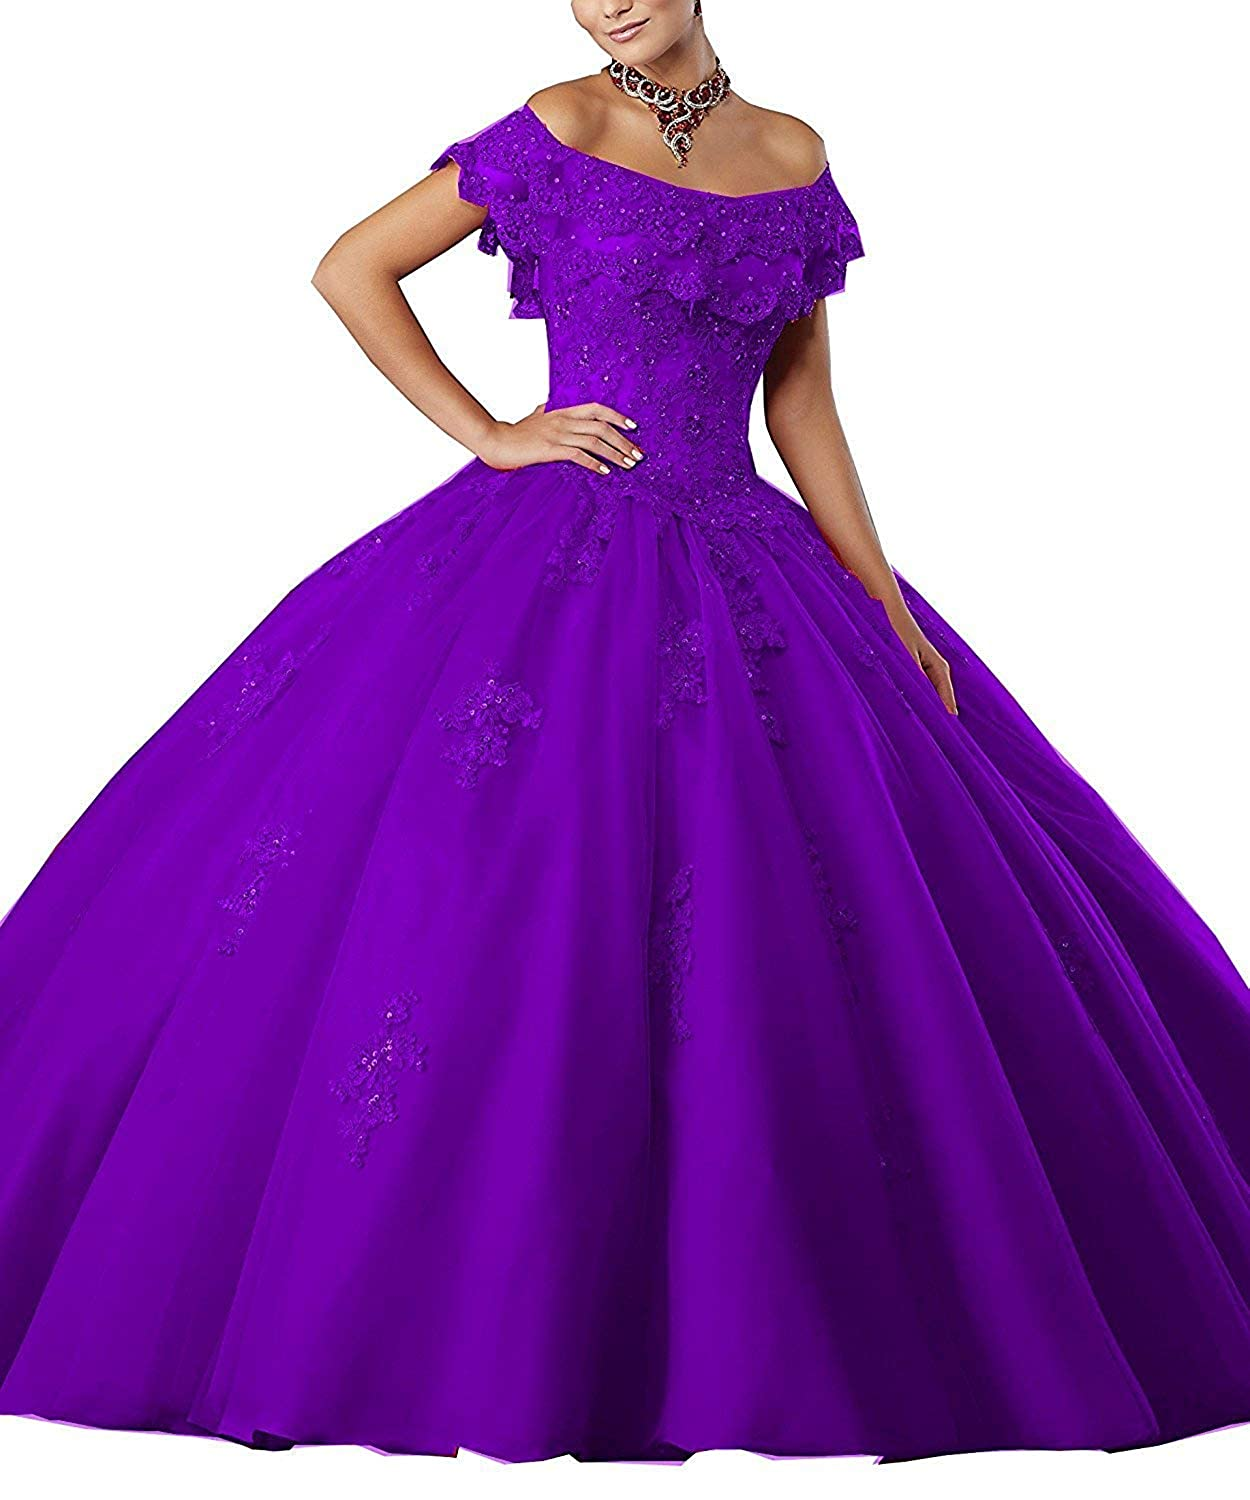 Gemila Womens Off-Shoulder Lace Applique Beaded Ball Gown Sweet 16 Dresses